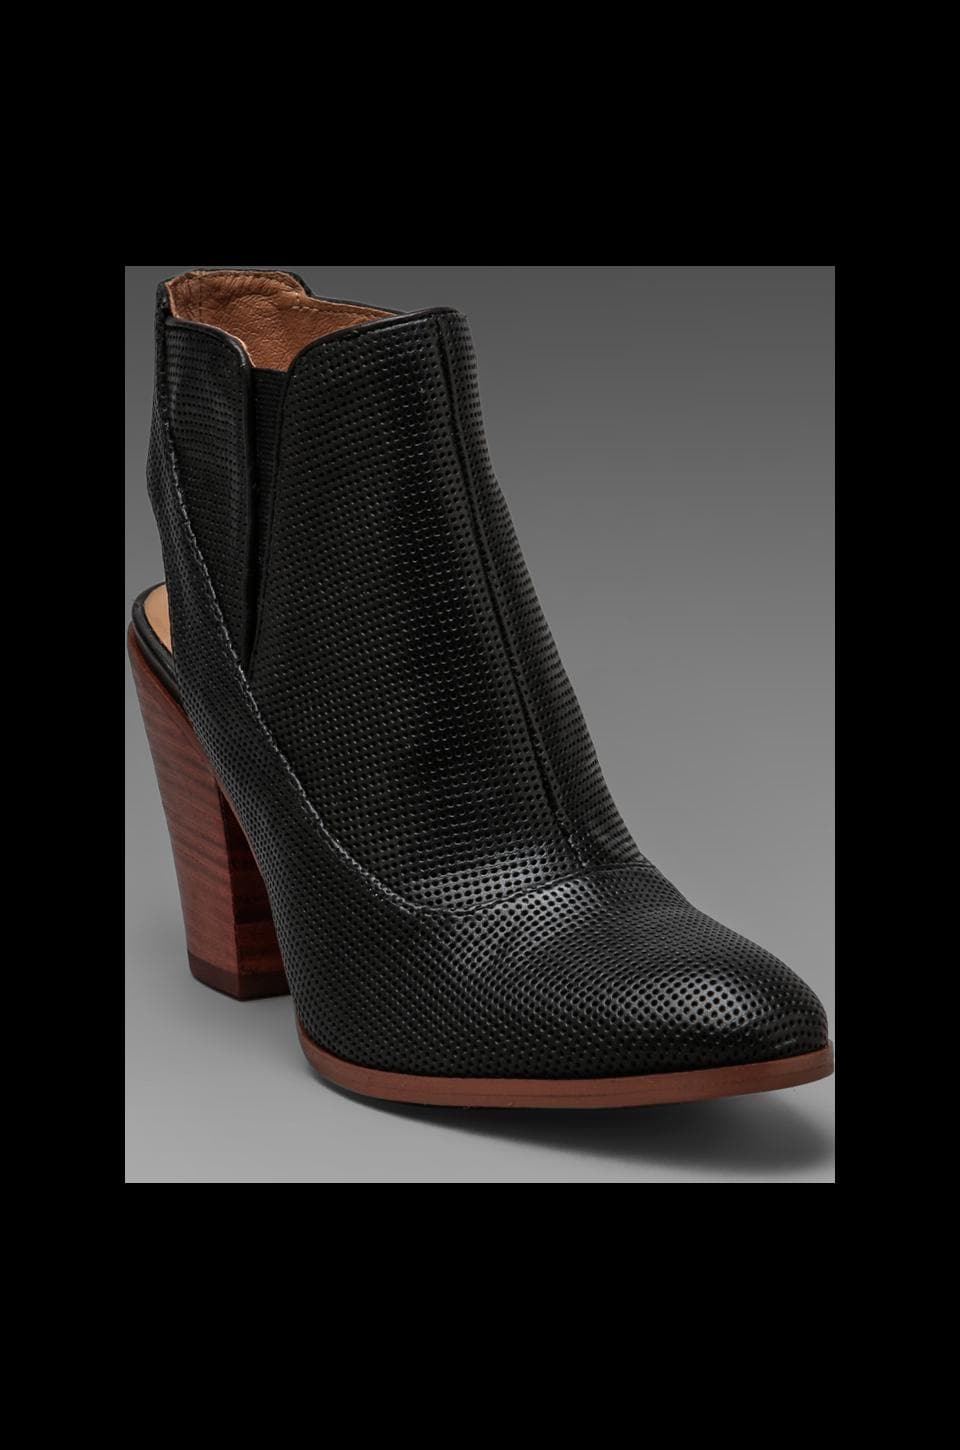 Dolce Vita Hartley Boot in Black